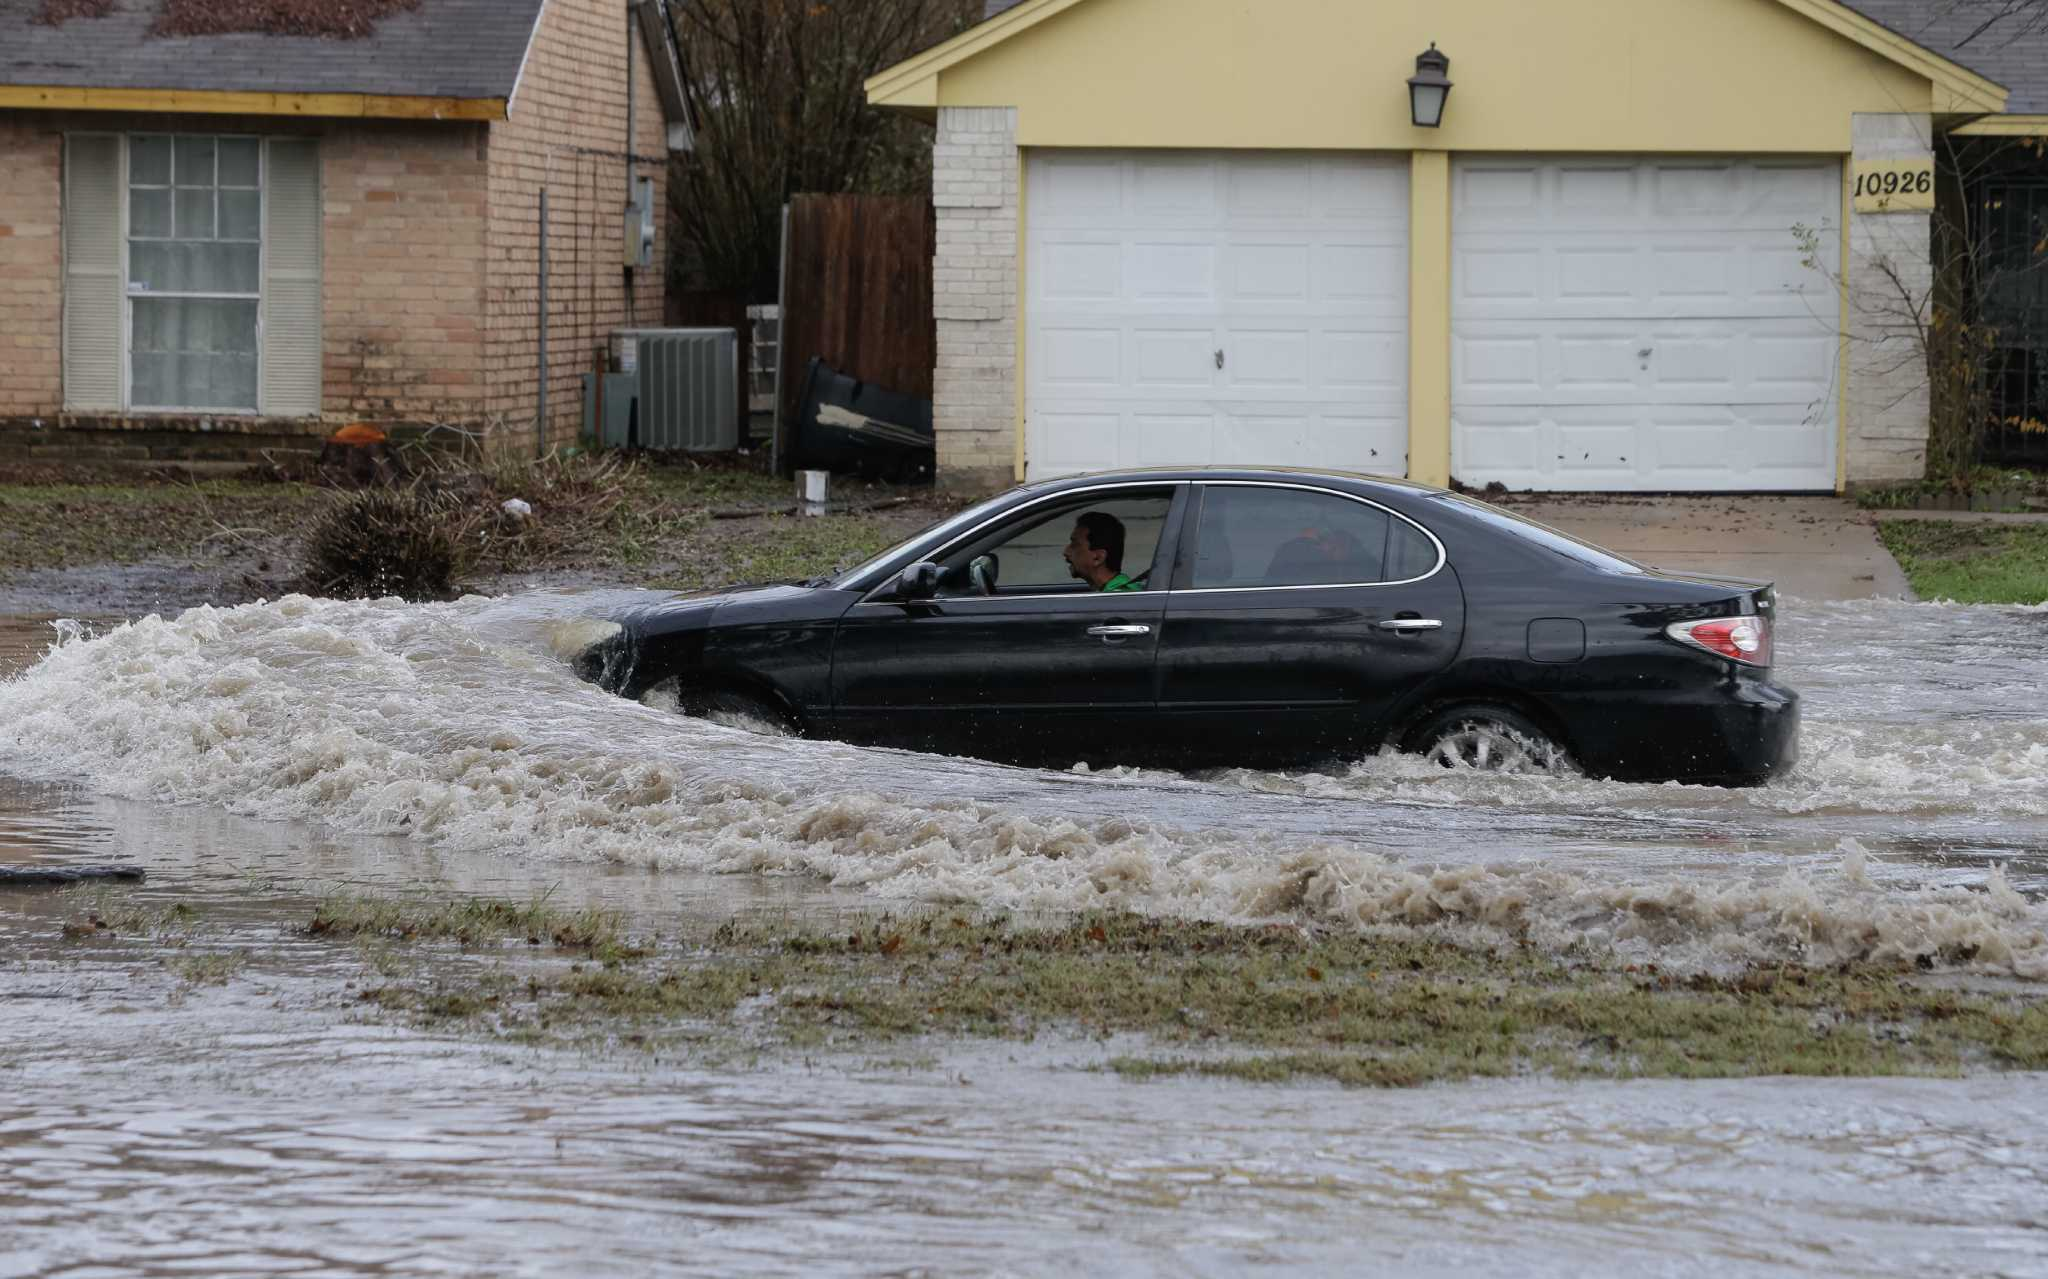 Houston streets that are prone to flooding